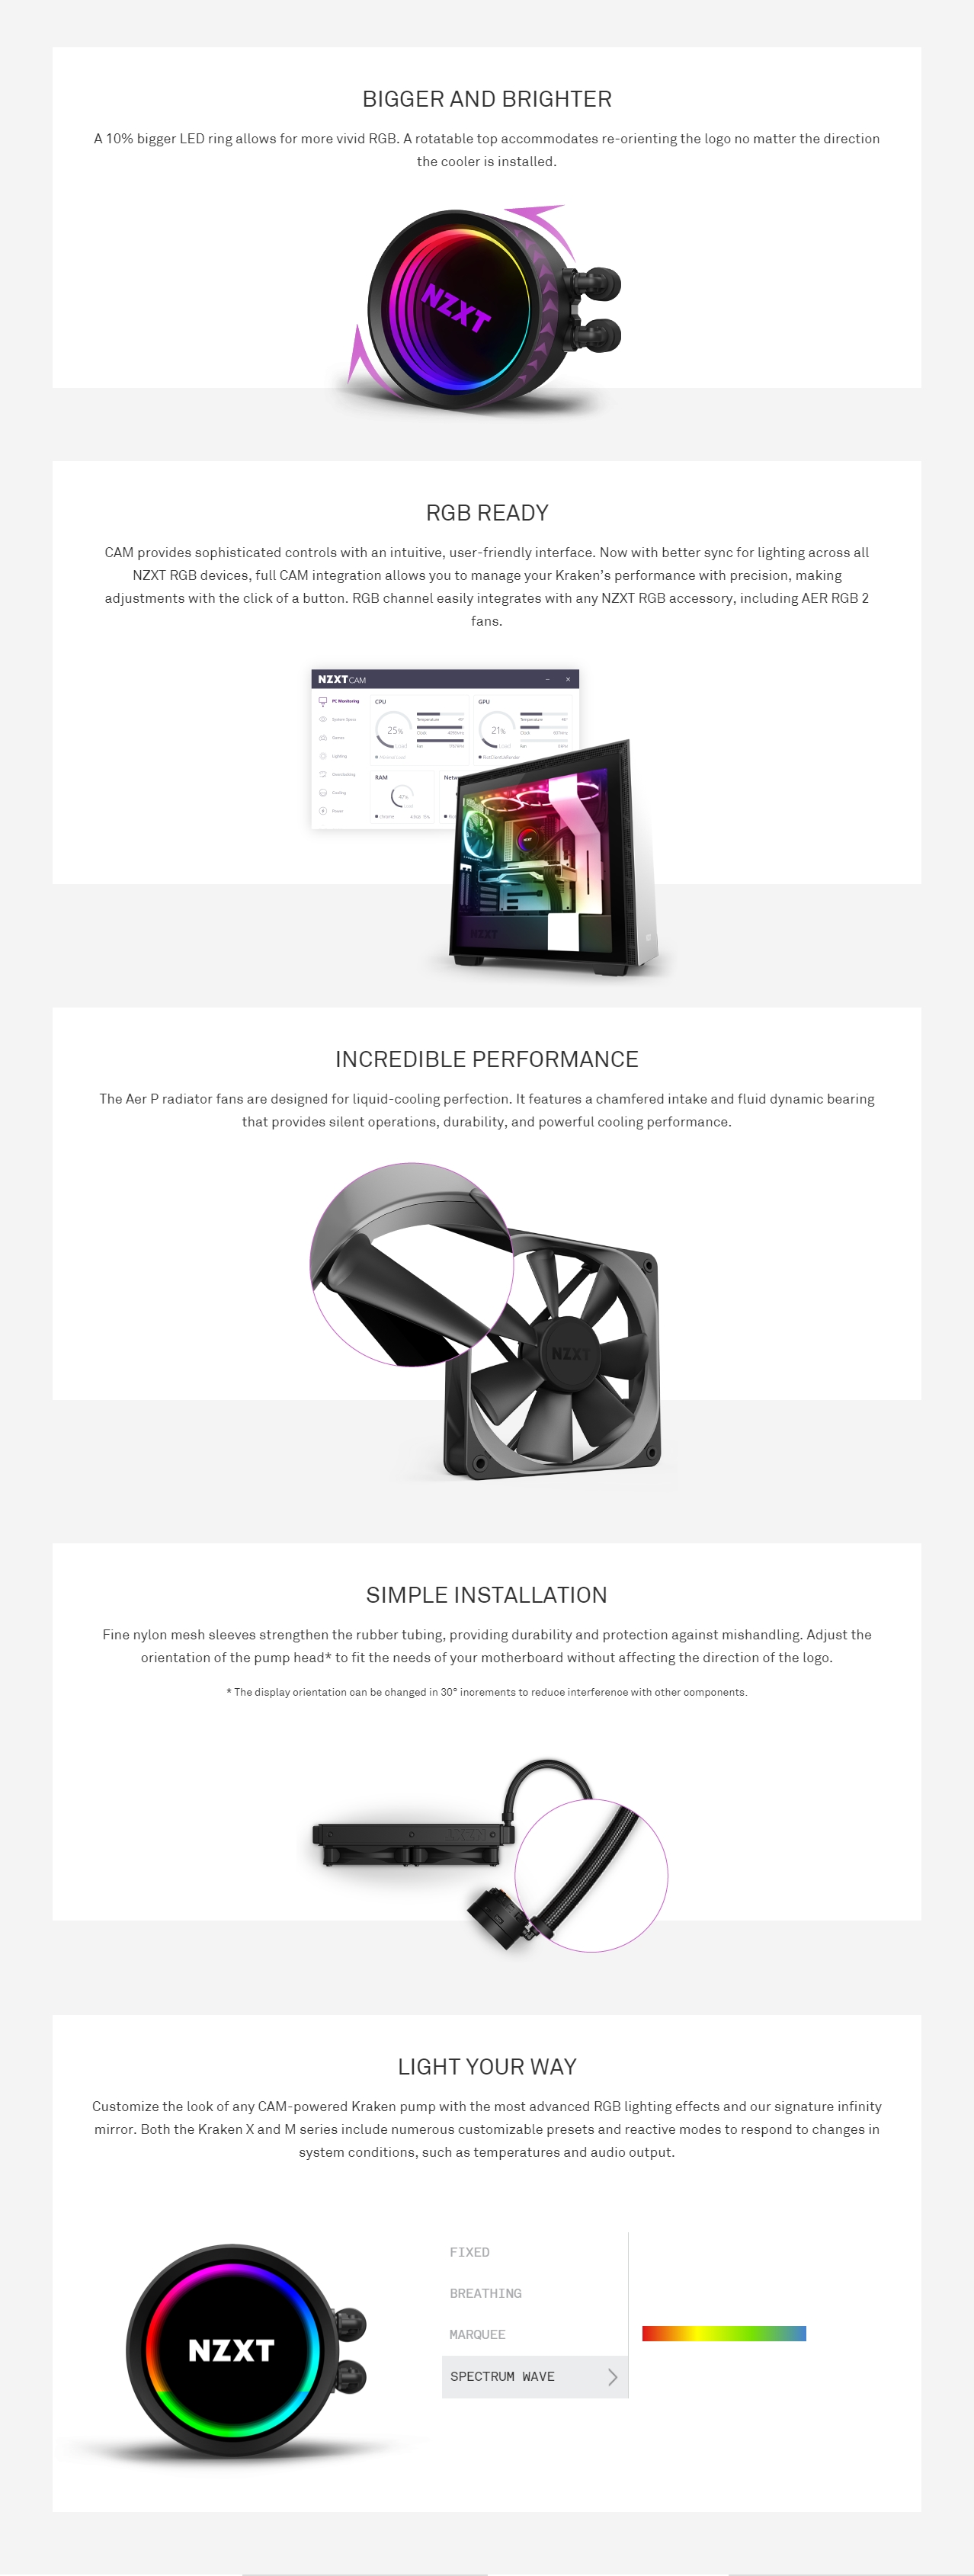 A large marketing image providing additional information about the product NZXT Kraken X53 RGB 240mm AIO Liquid CPU Cooler - Additional alt info not provided